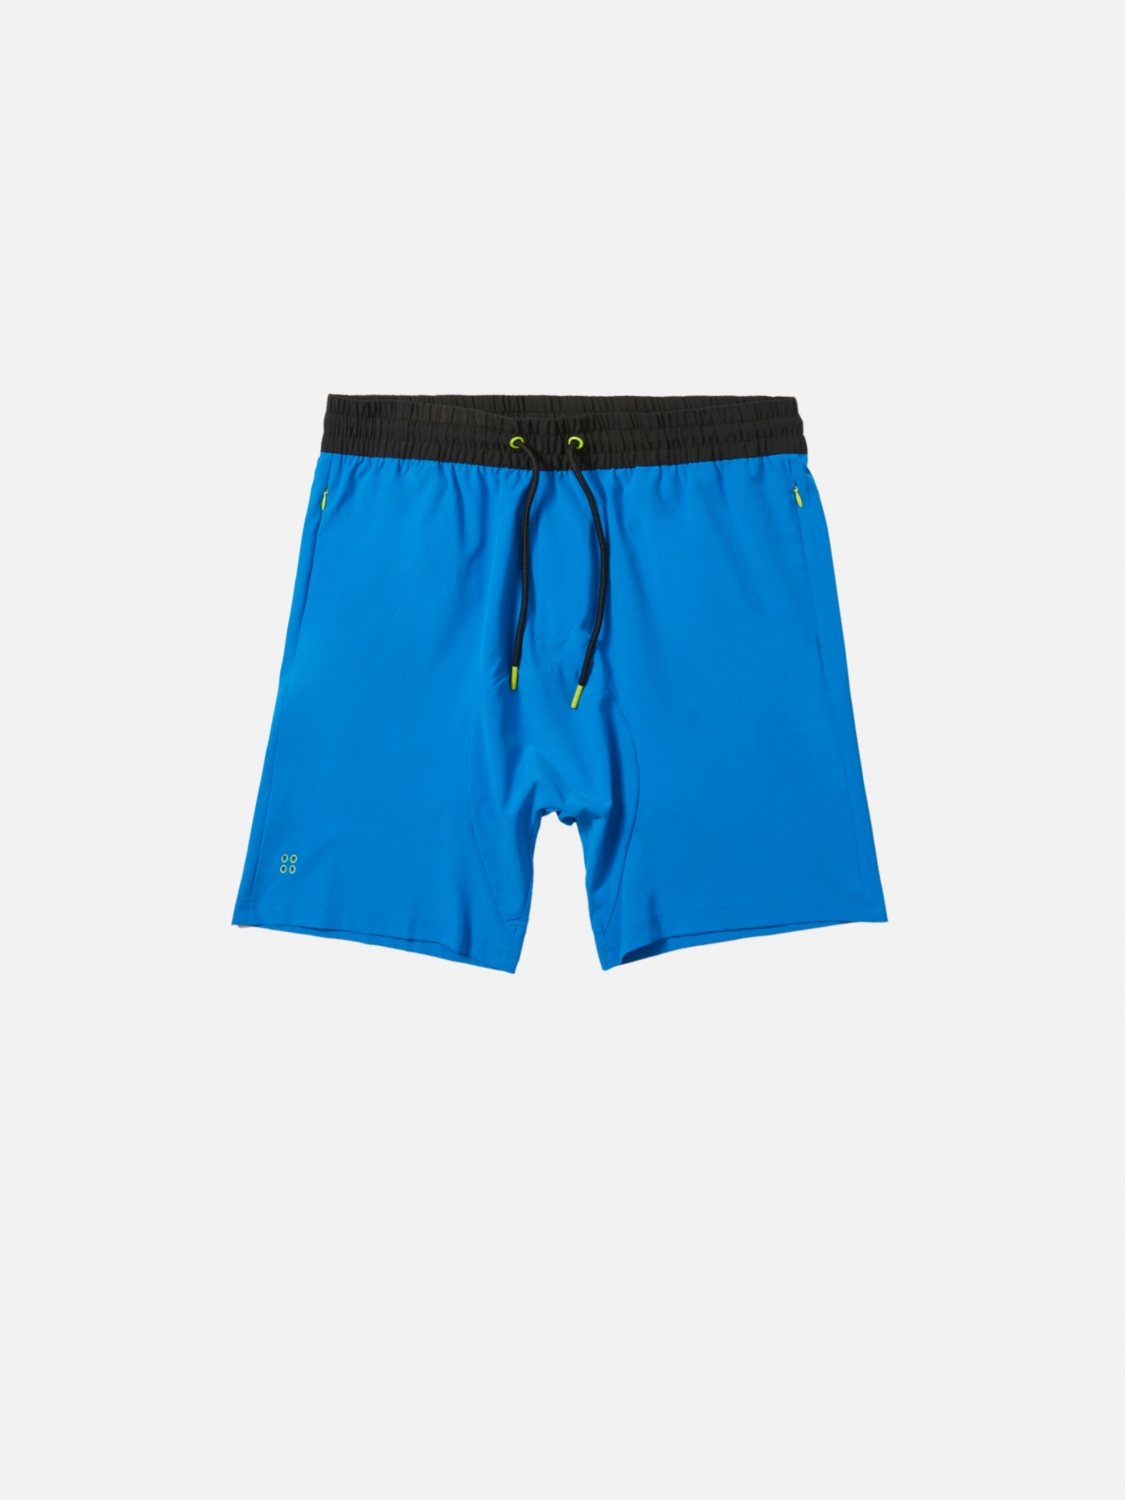 reggie short - royal blue